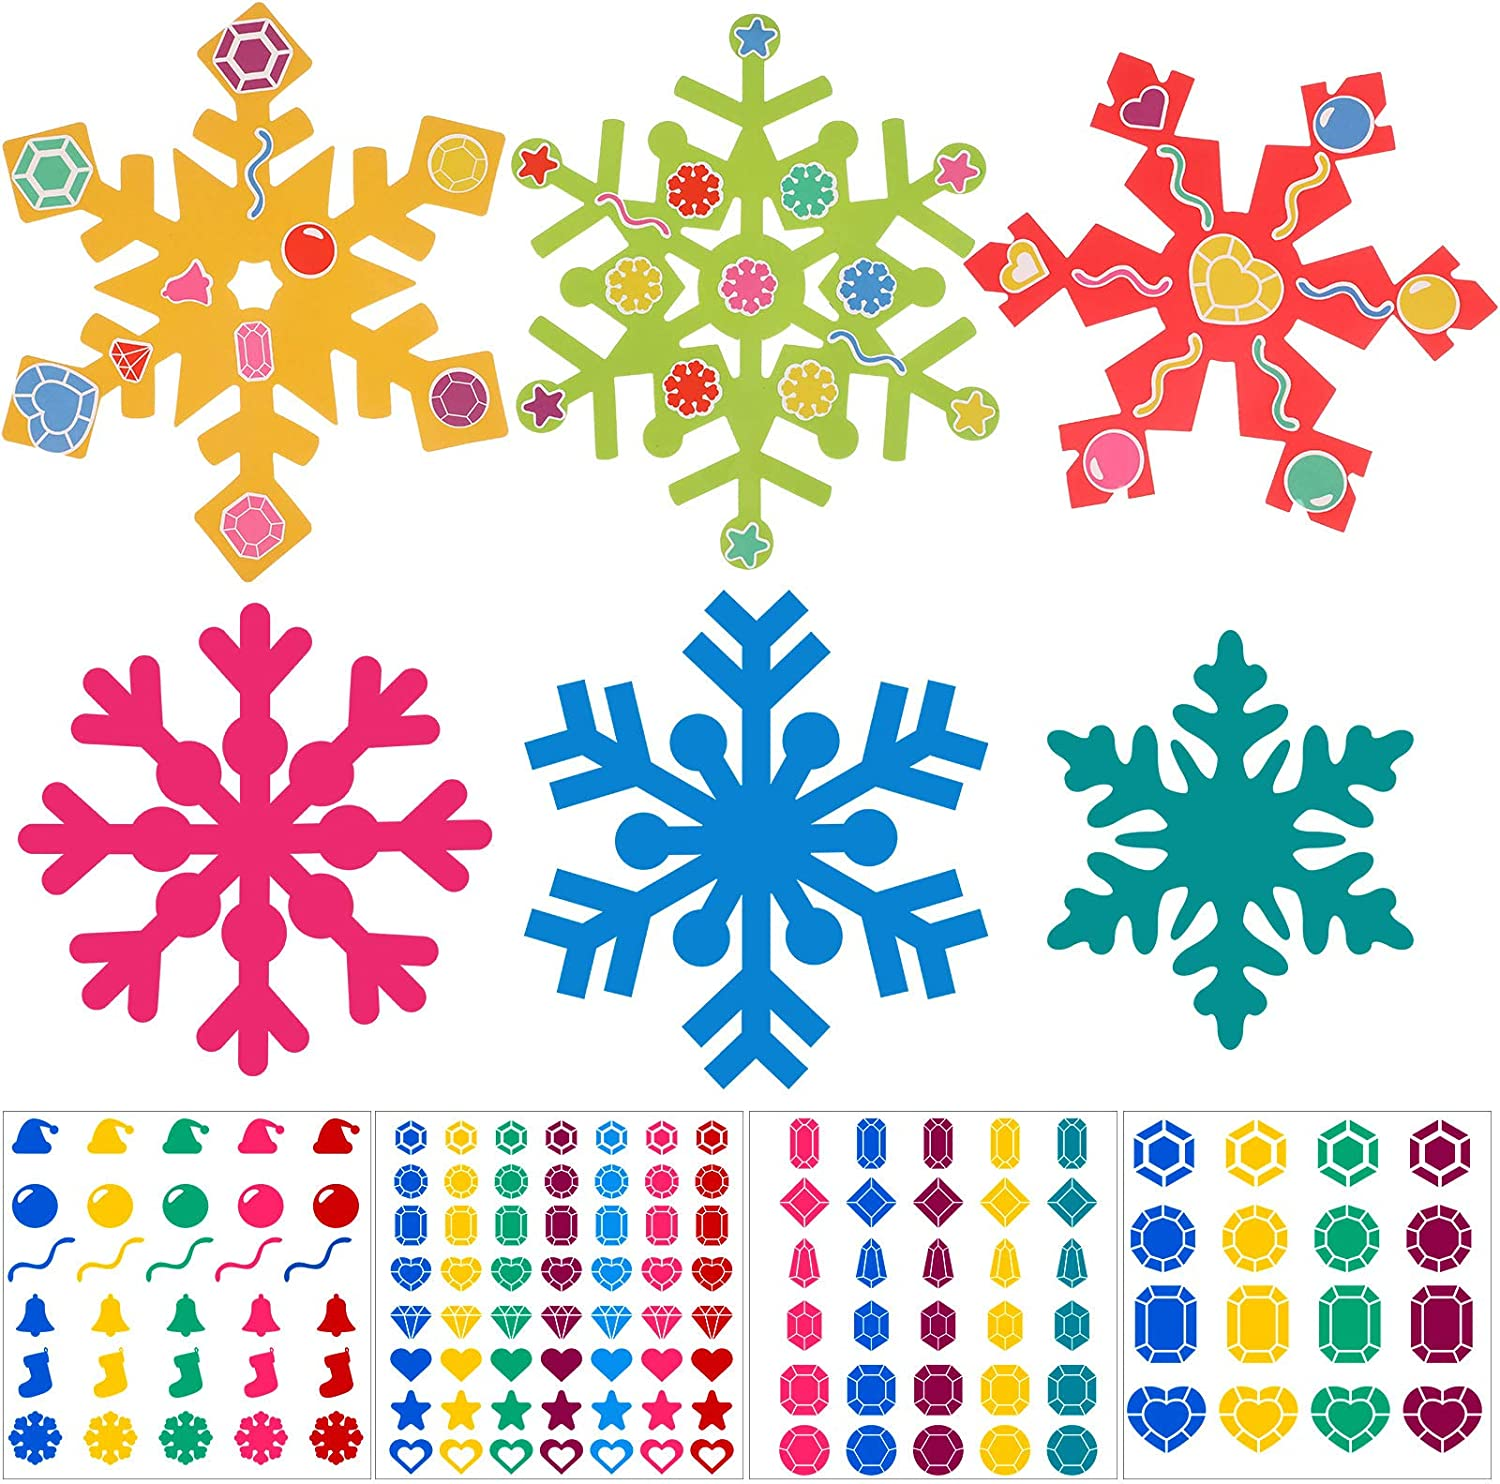 Zonon online shop Fees free 24 Pieces Holiday Snowflake Craft Boy and D Kit for Girls